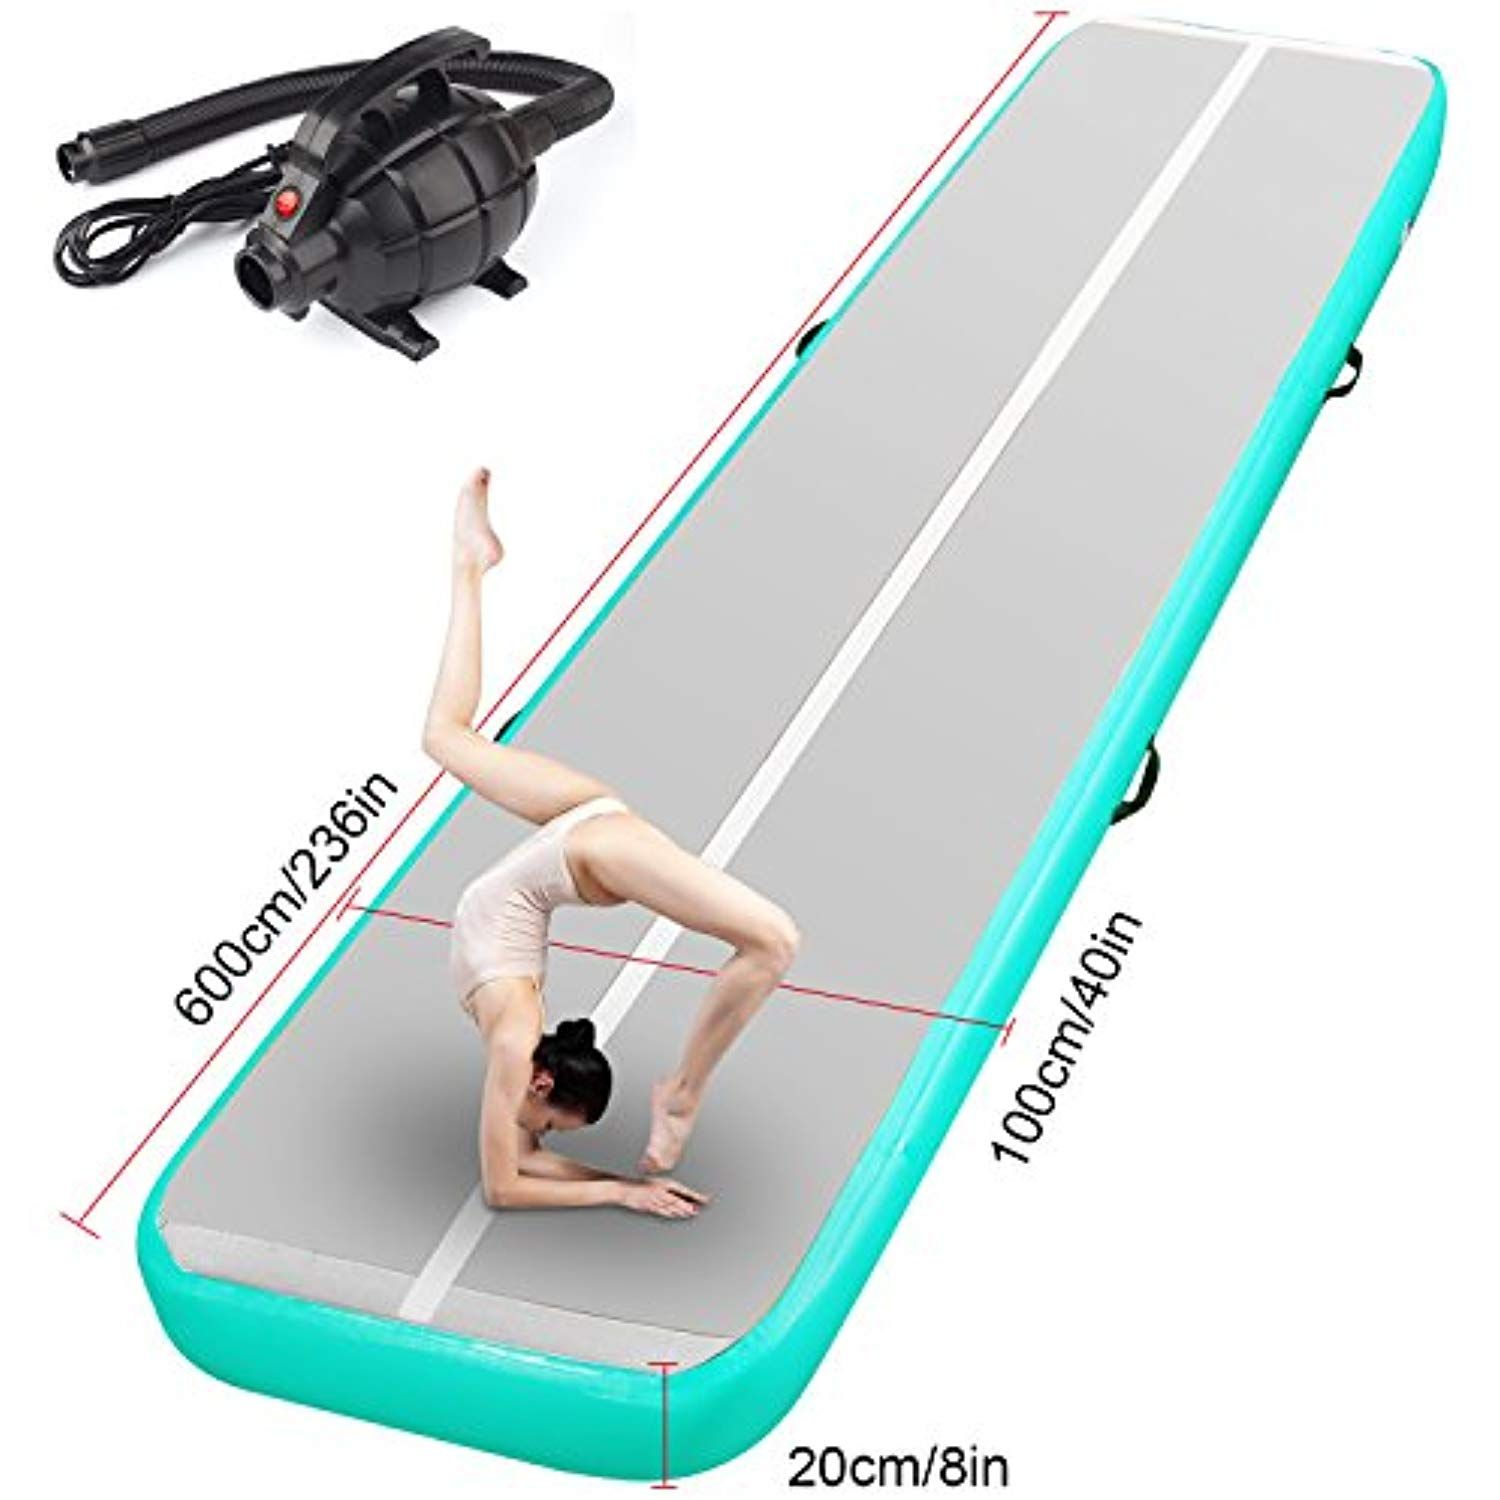 Fbsport 10ft 13ft 16ft 20ft Inflatable Gymnastics Mat Airtrack Tumbling Mat Non Slipping Floor Mattress With Air Pump Fo Tumble Mats Gymnastics Mats Gymnastics